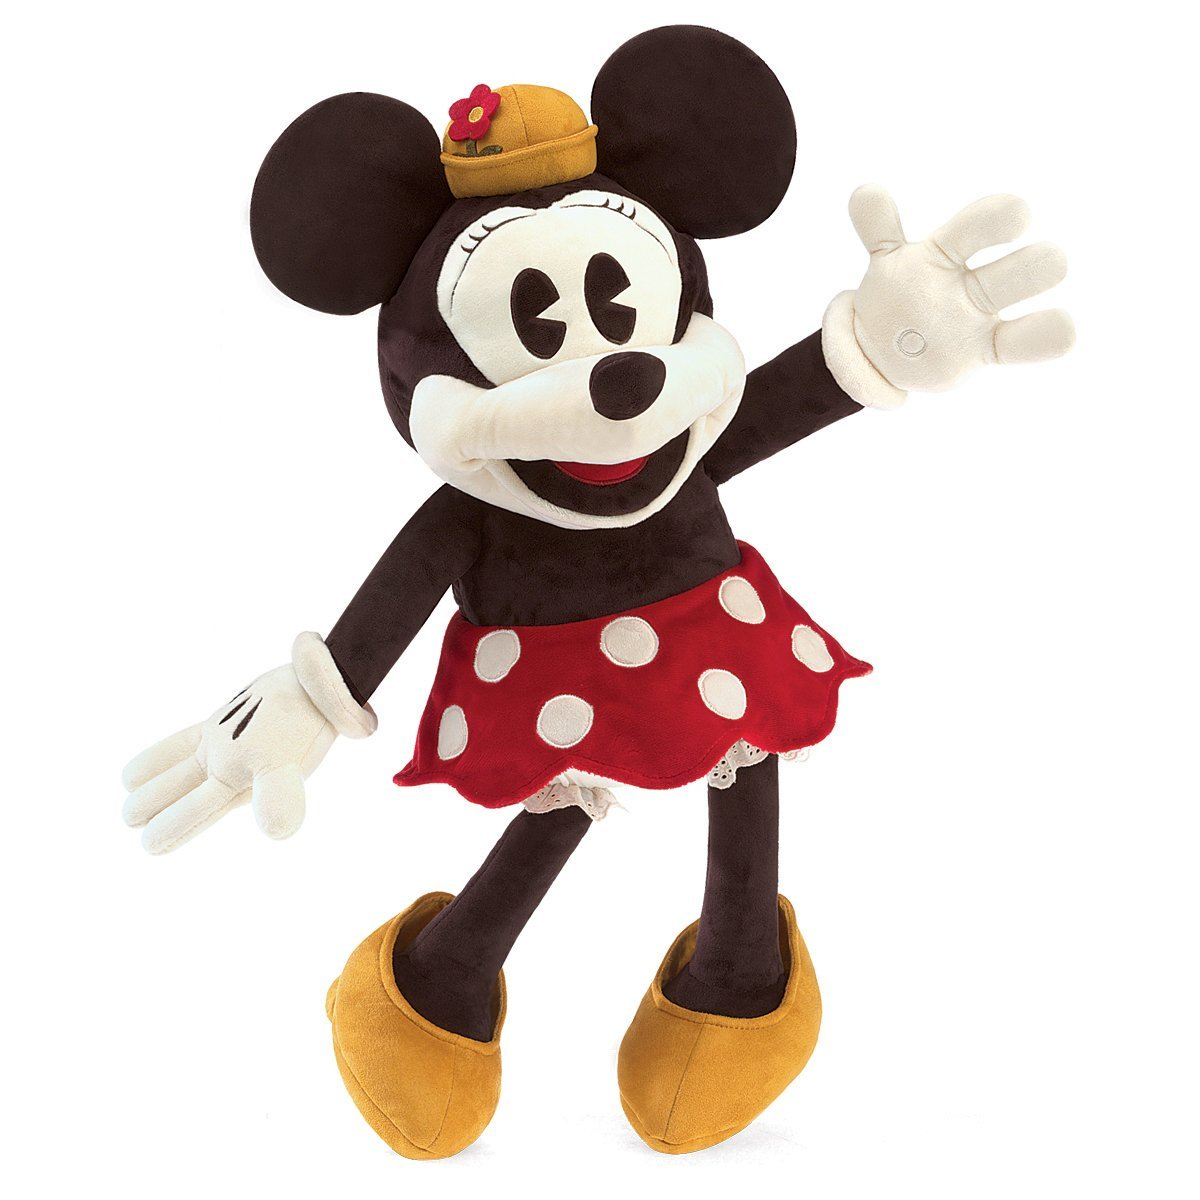 Folkmanis Puppets Play Pretend Fun Animal Puppets (Minnie Mouse) by Folkmanis